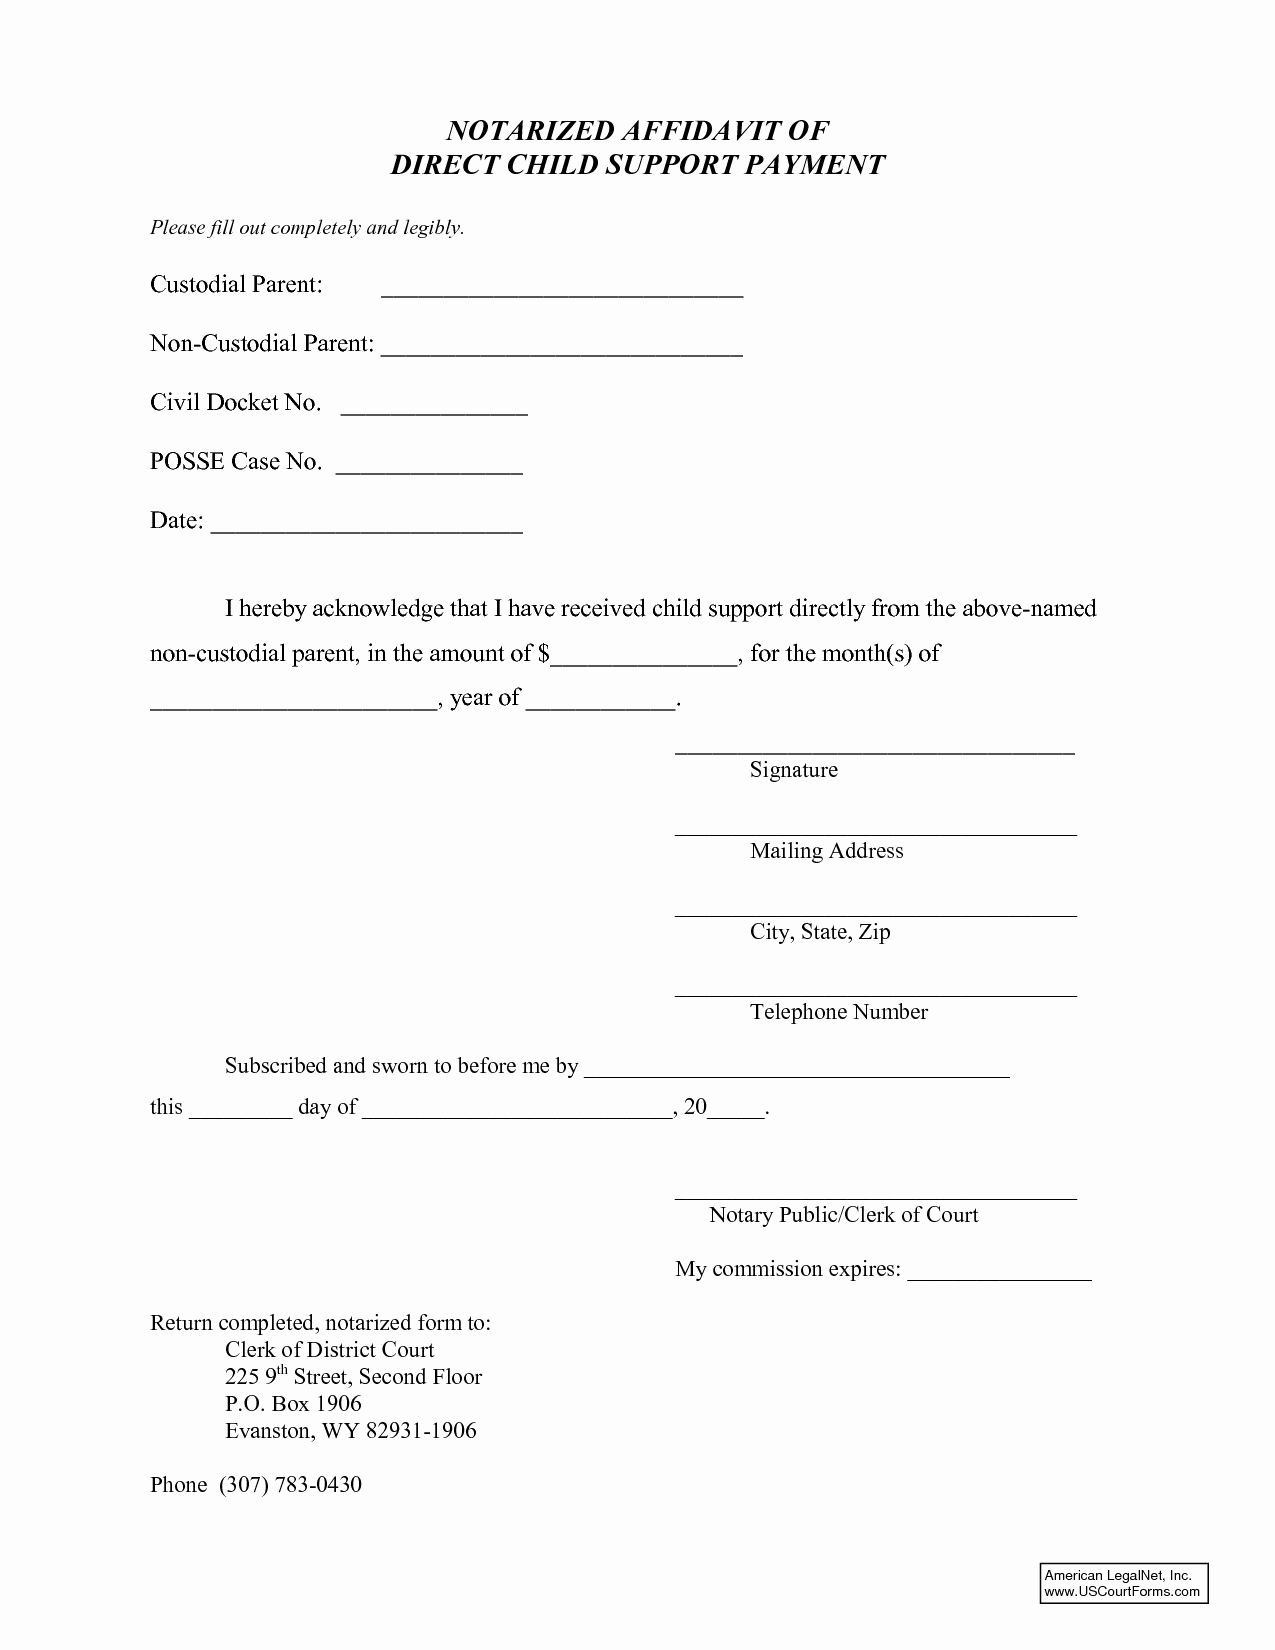 Child Support Letter Of Agreement Template - How to Write A Letter to Stop Child Support Image Collections